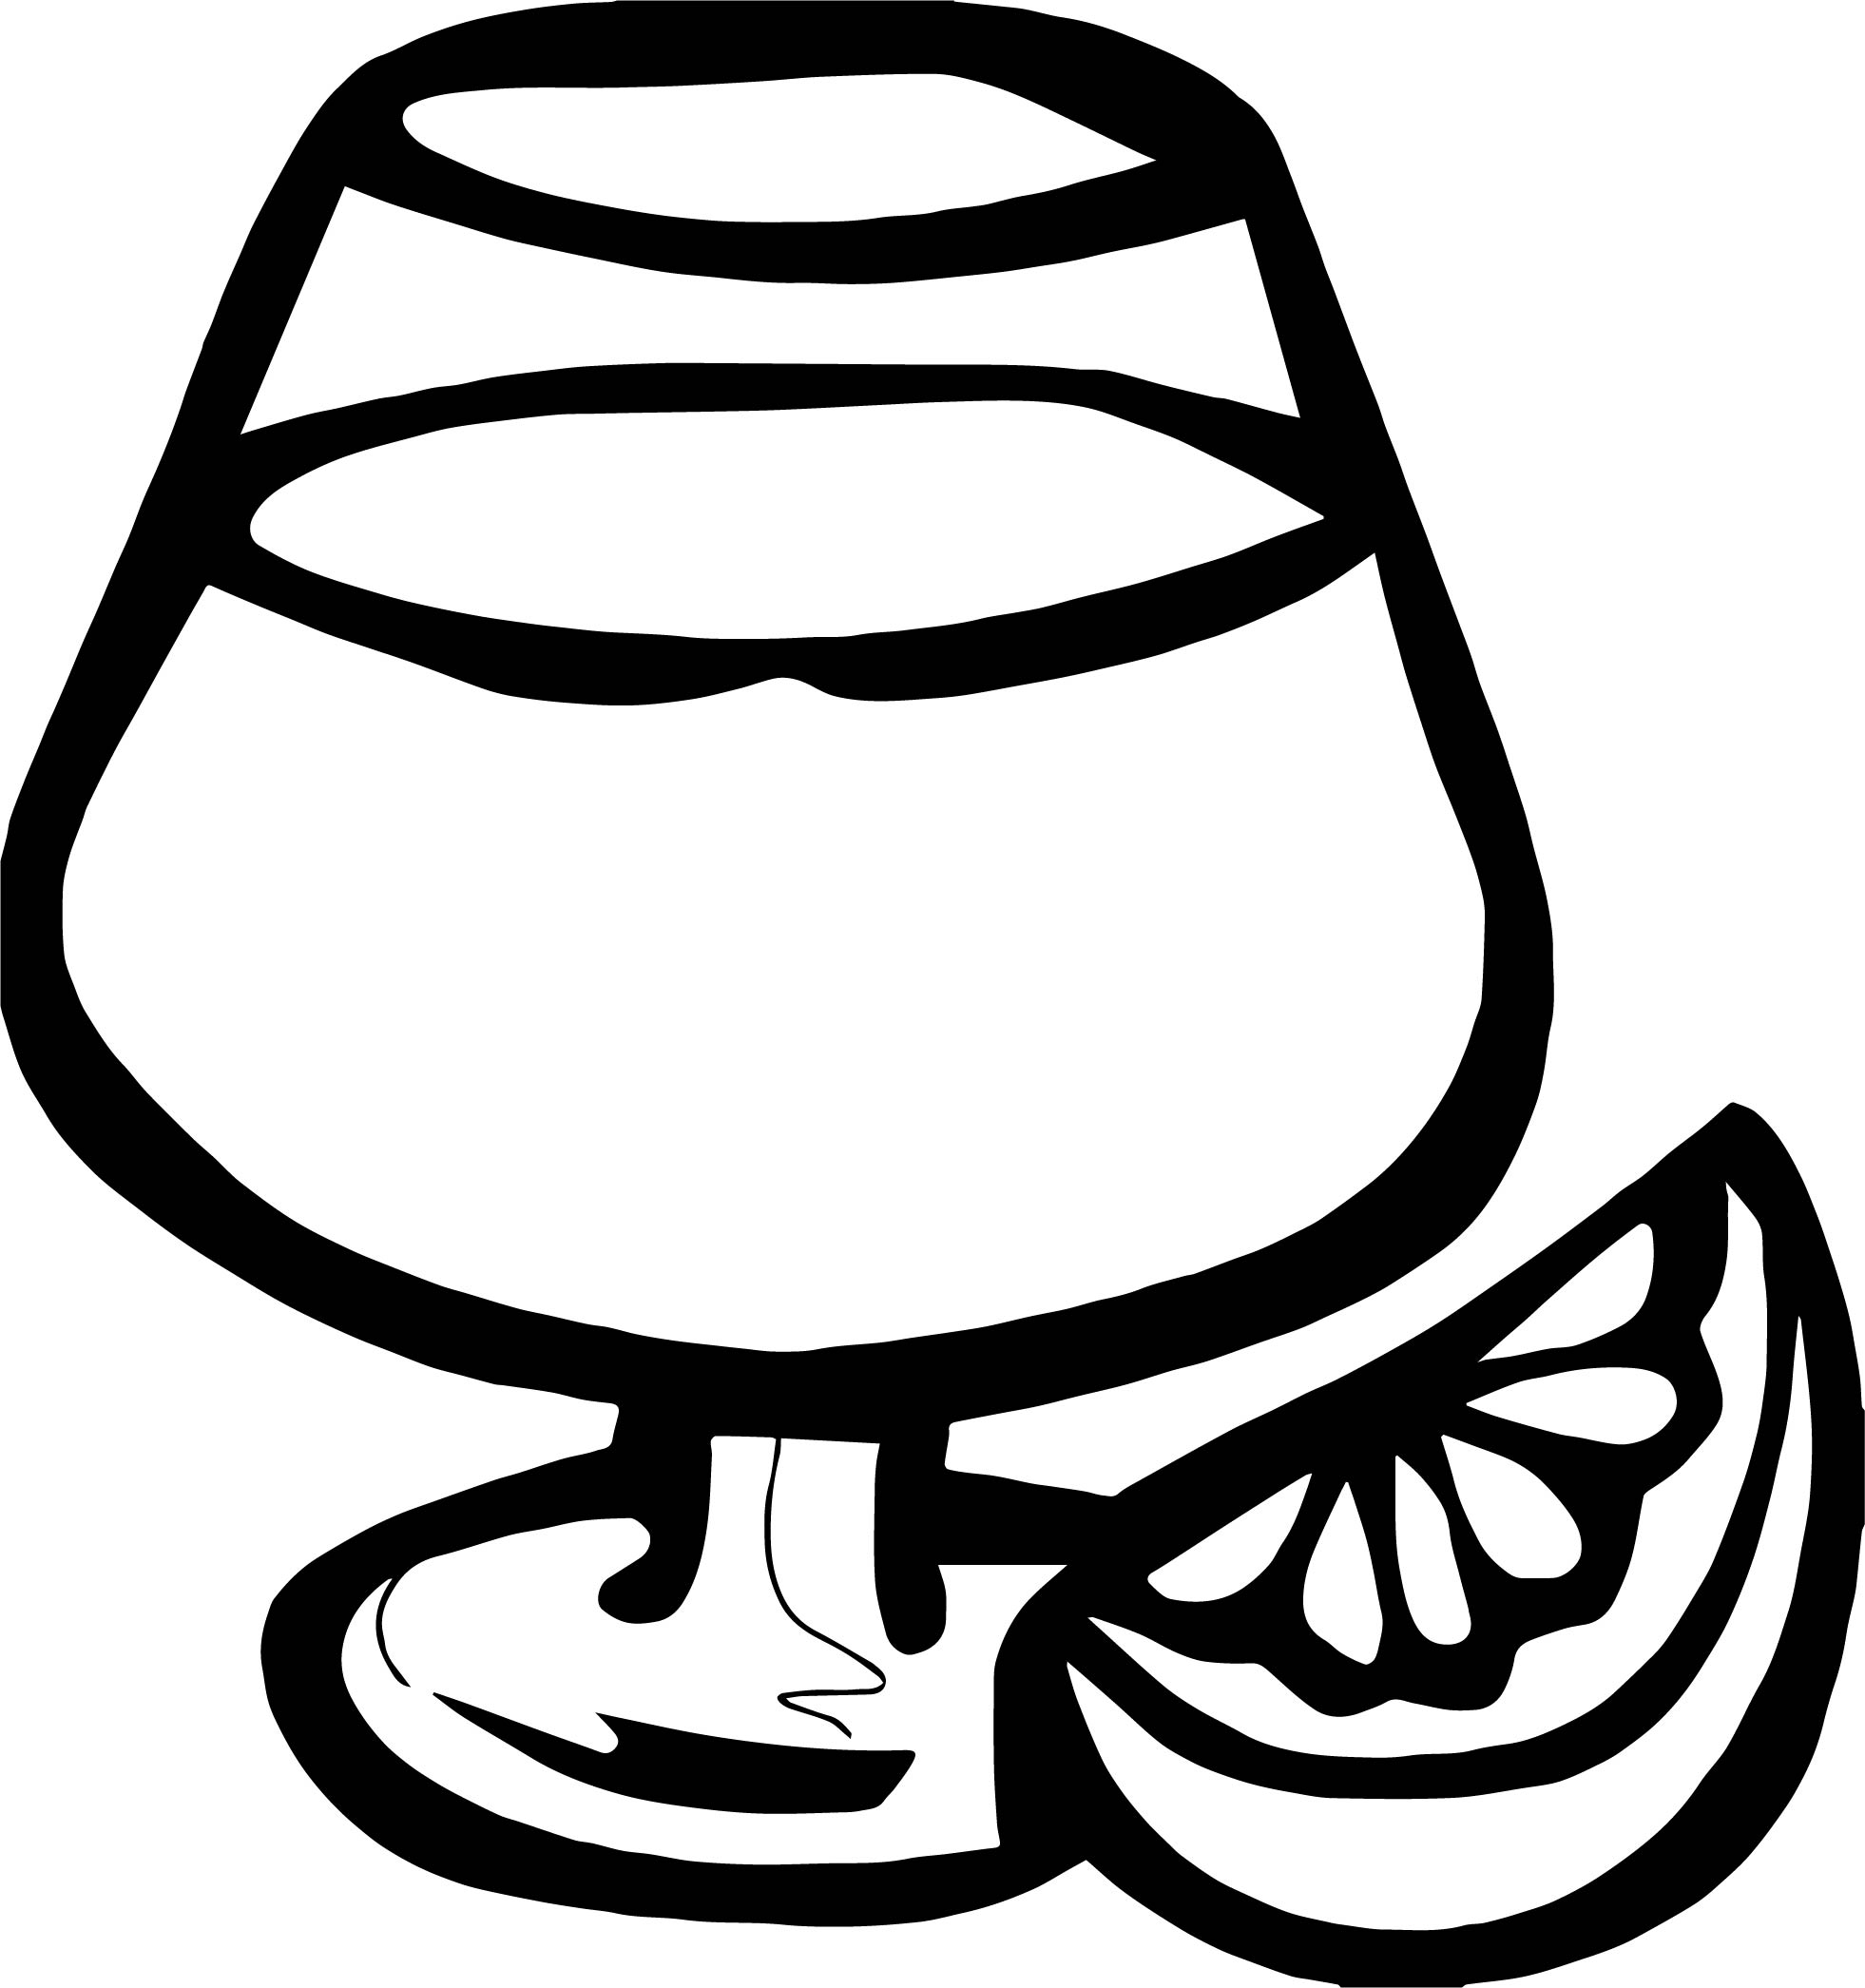 Mixed Drink Lemon Coloring Page